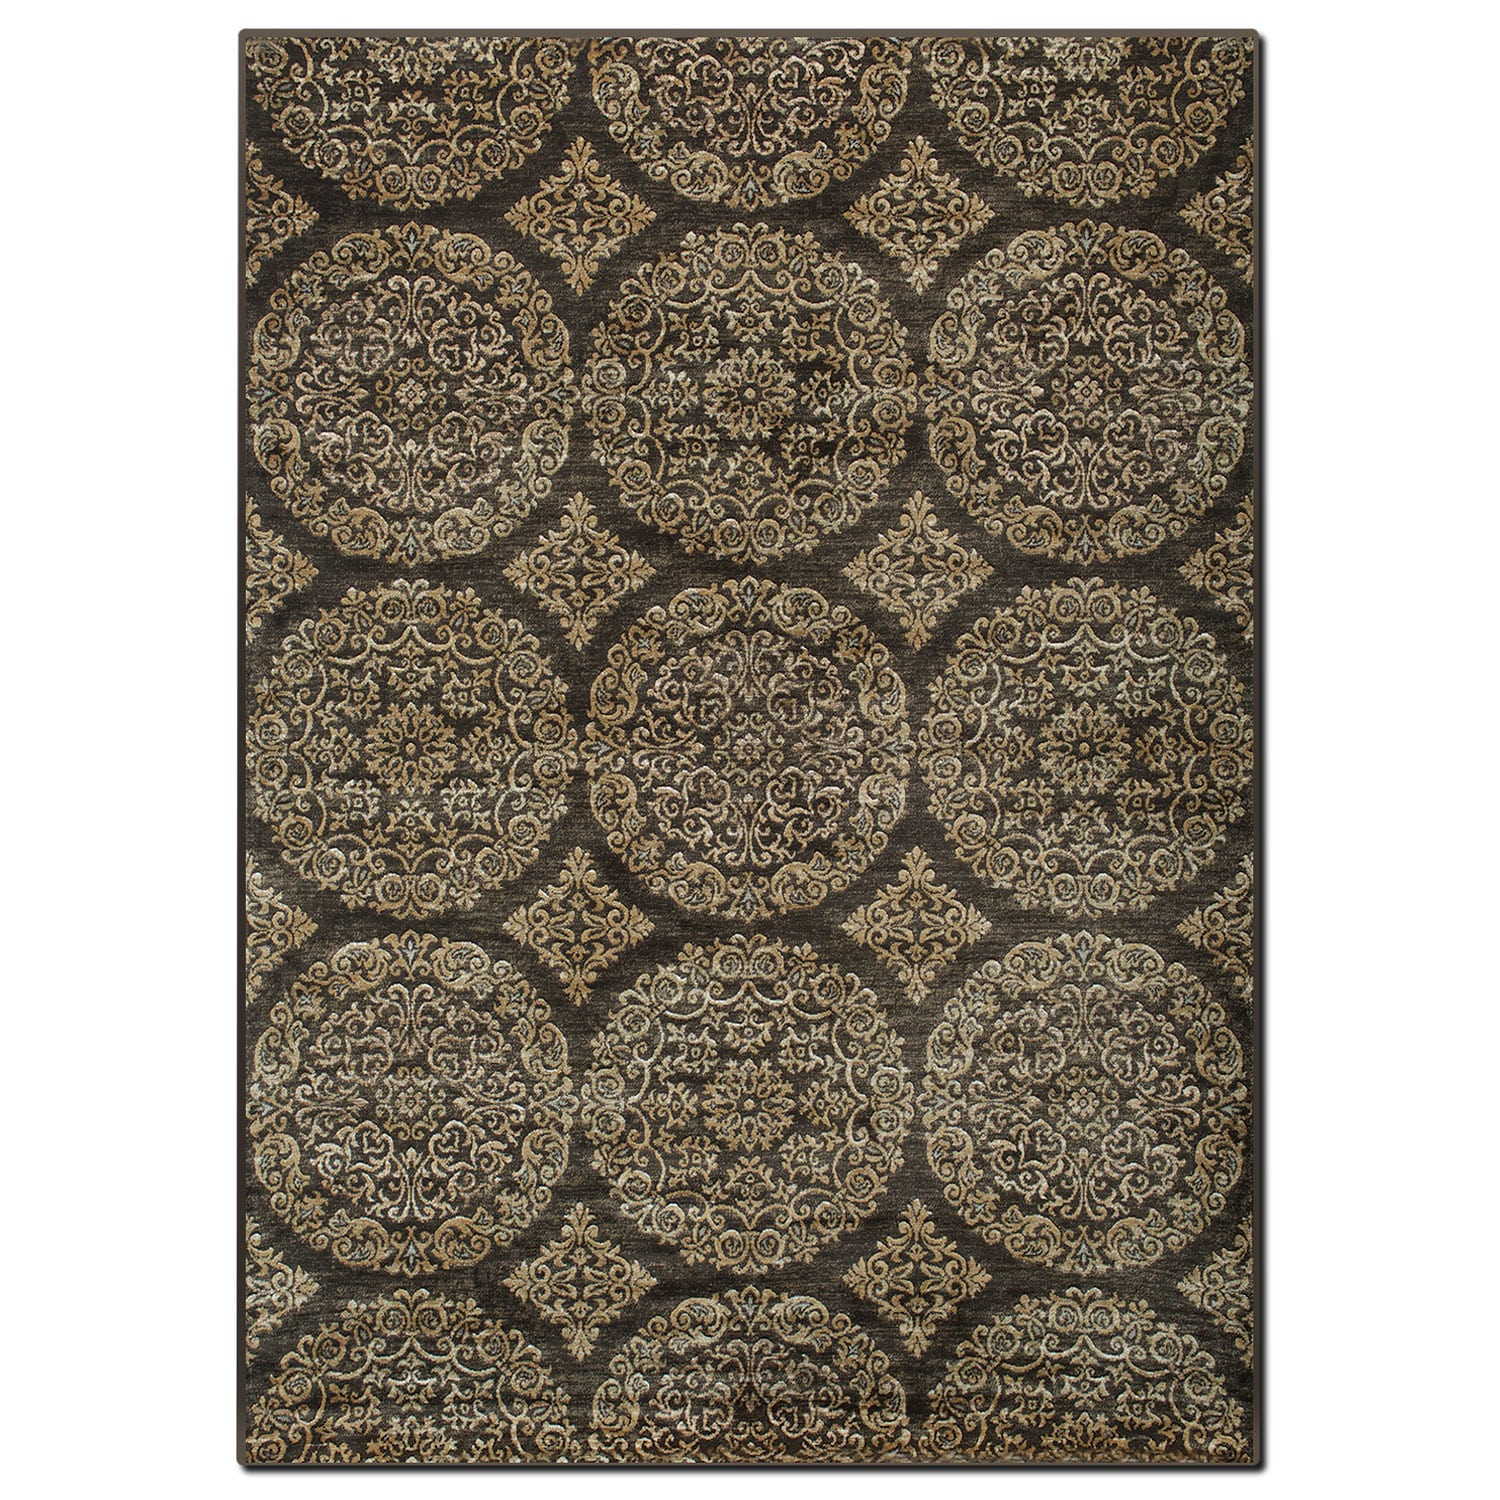 Sonoma 5' x 8' Area Rug - Brown